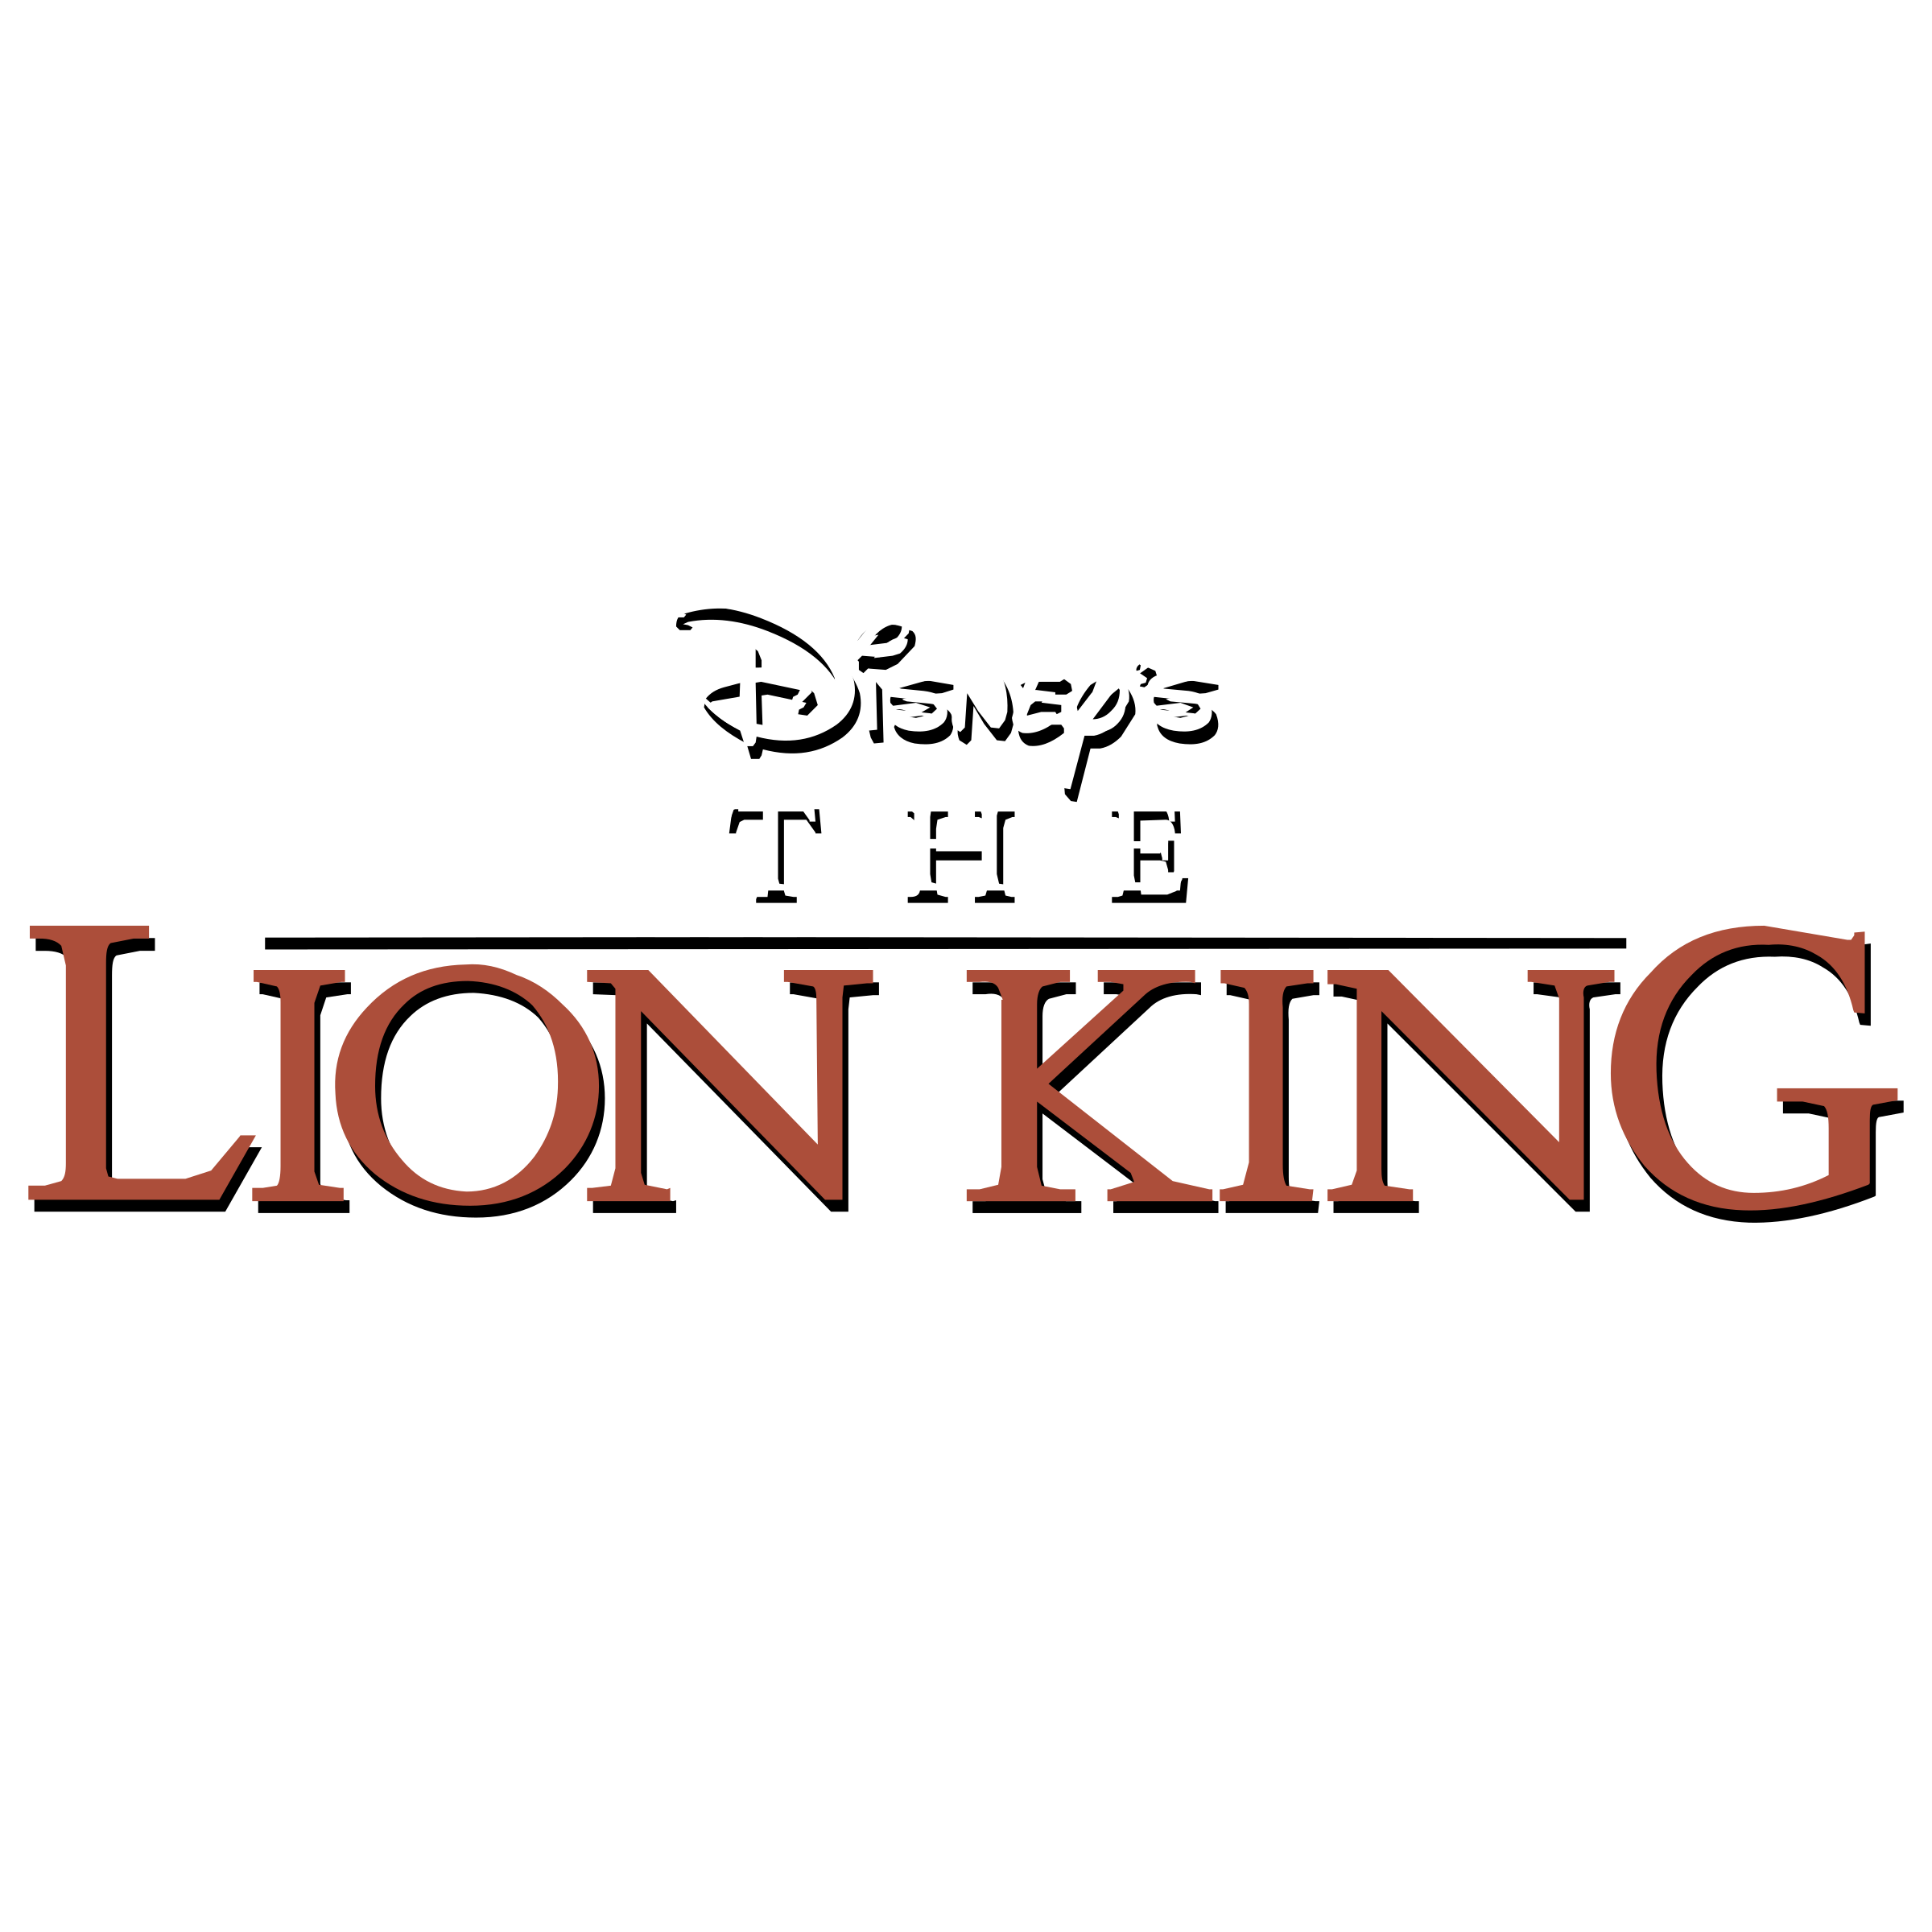 Lion king logo png. Disney s the transparent